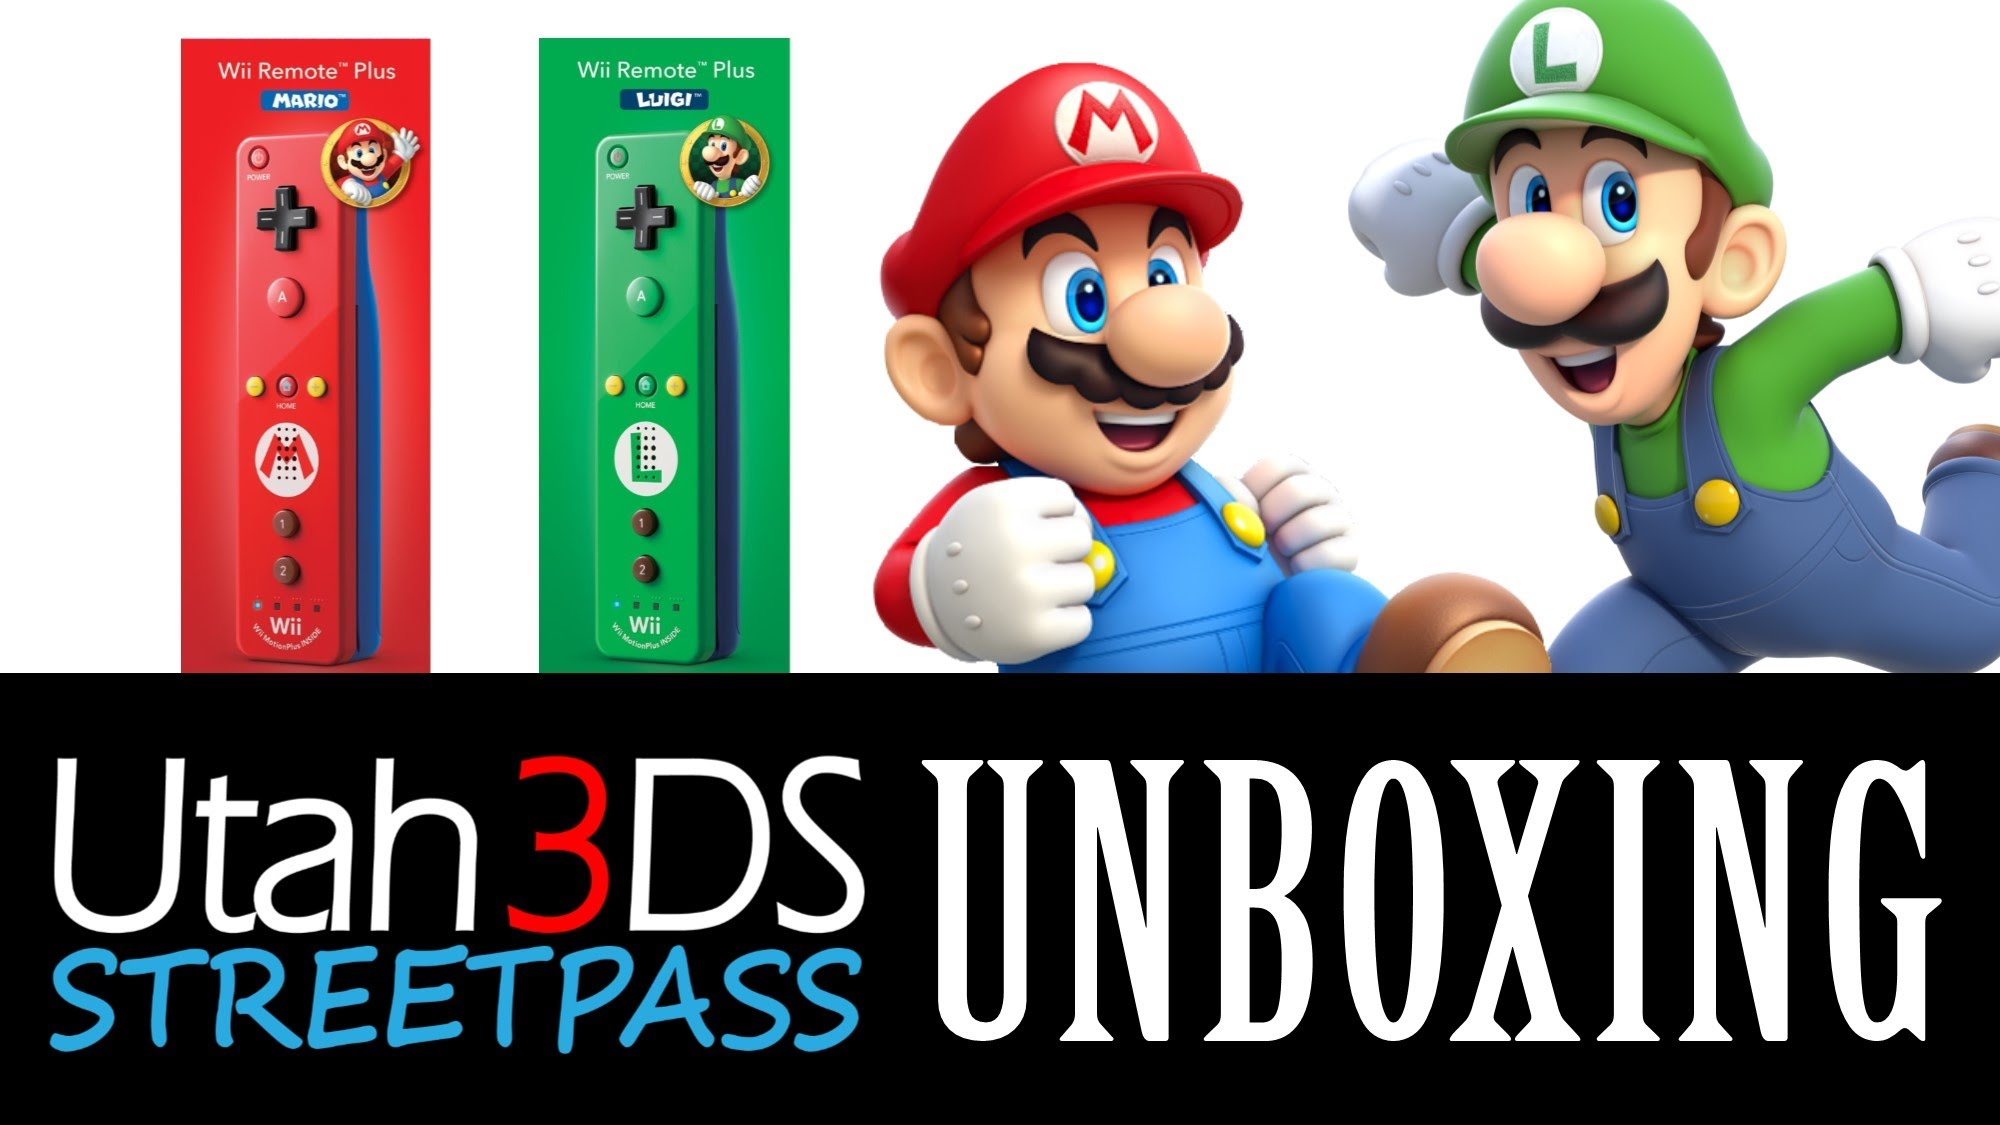 Unboxing – Mario and Luigi Wii Remote Plus controllers